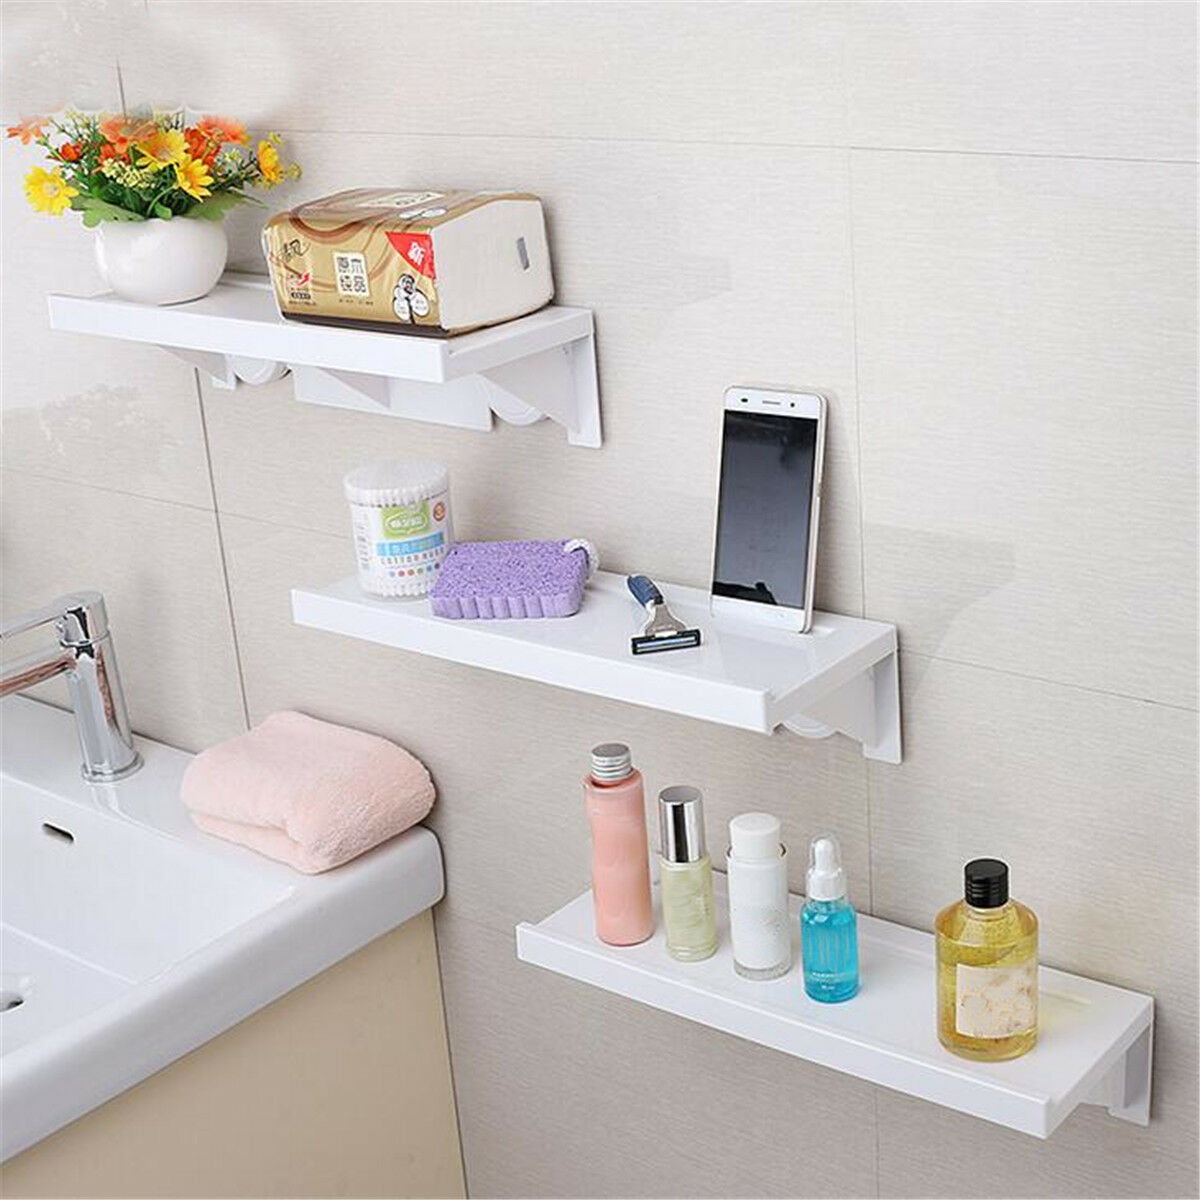 BATHROOM BATHTUB SHELF Holder Shower Storage Caddy Rack Bath ...